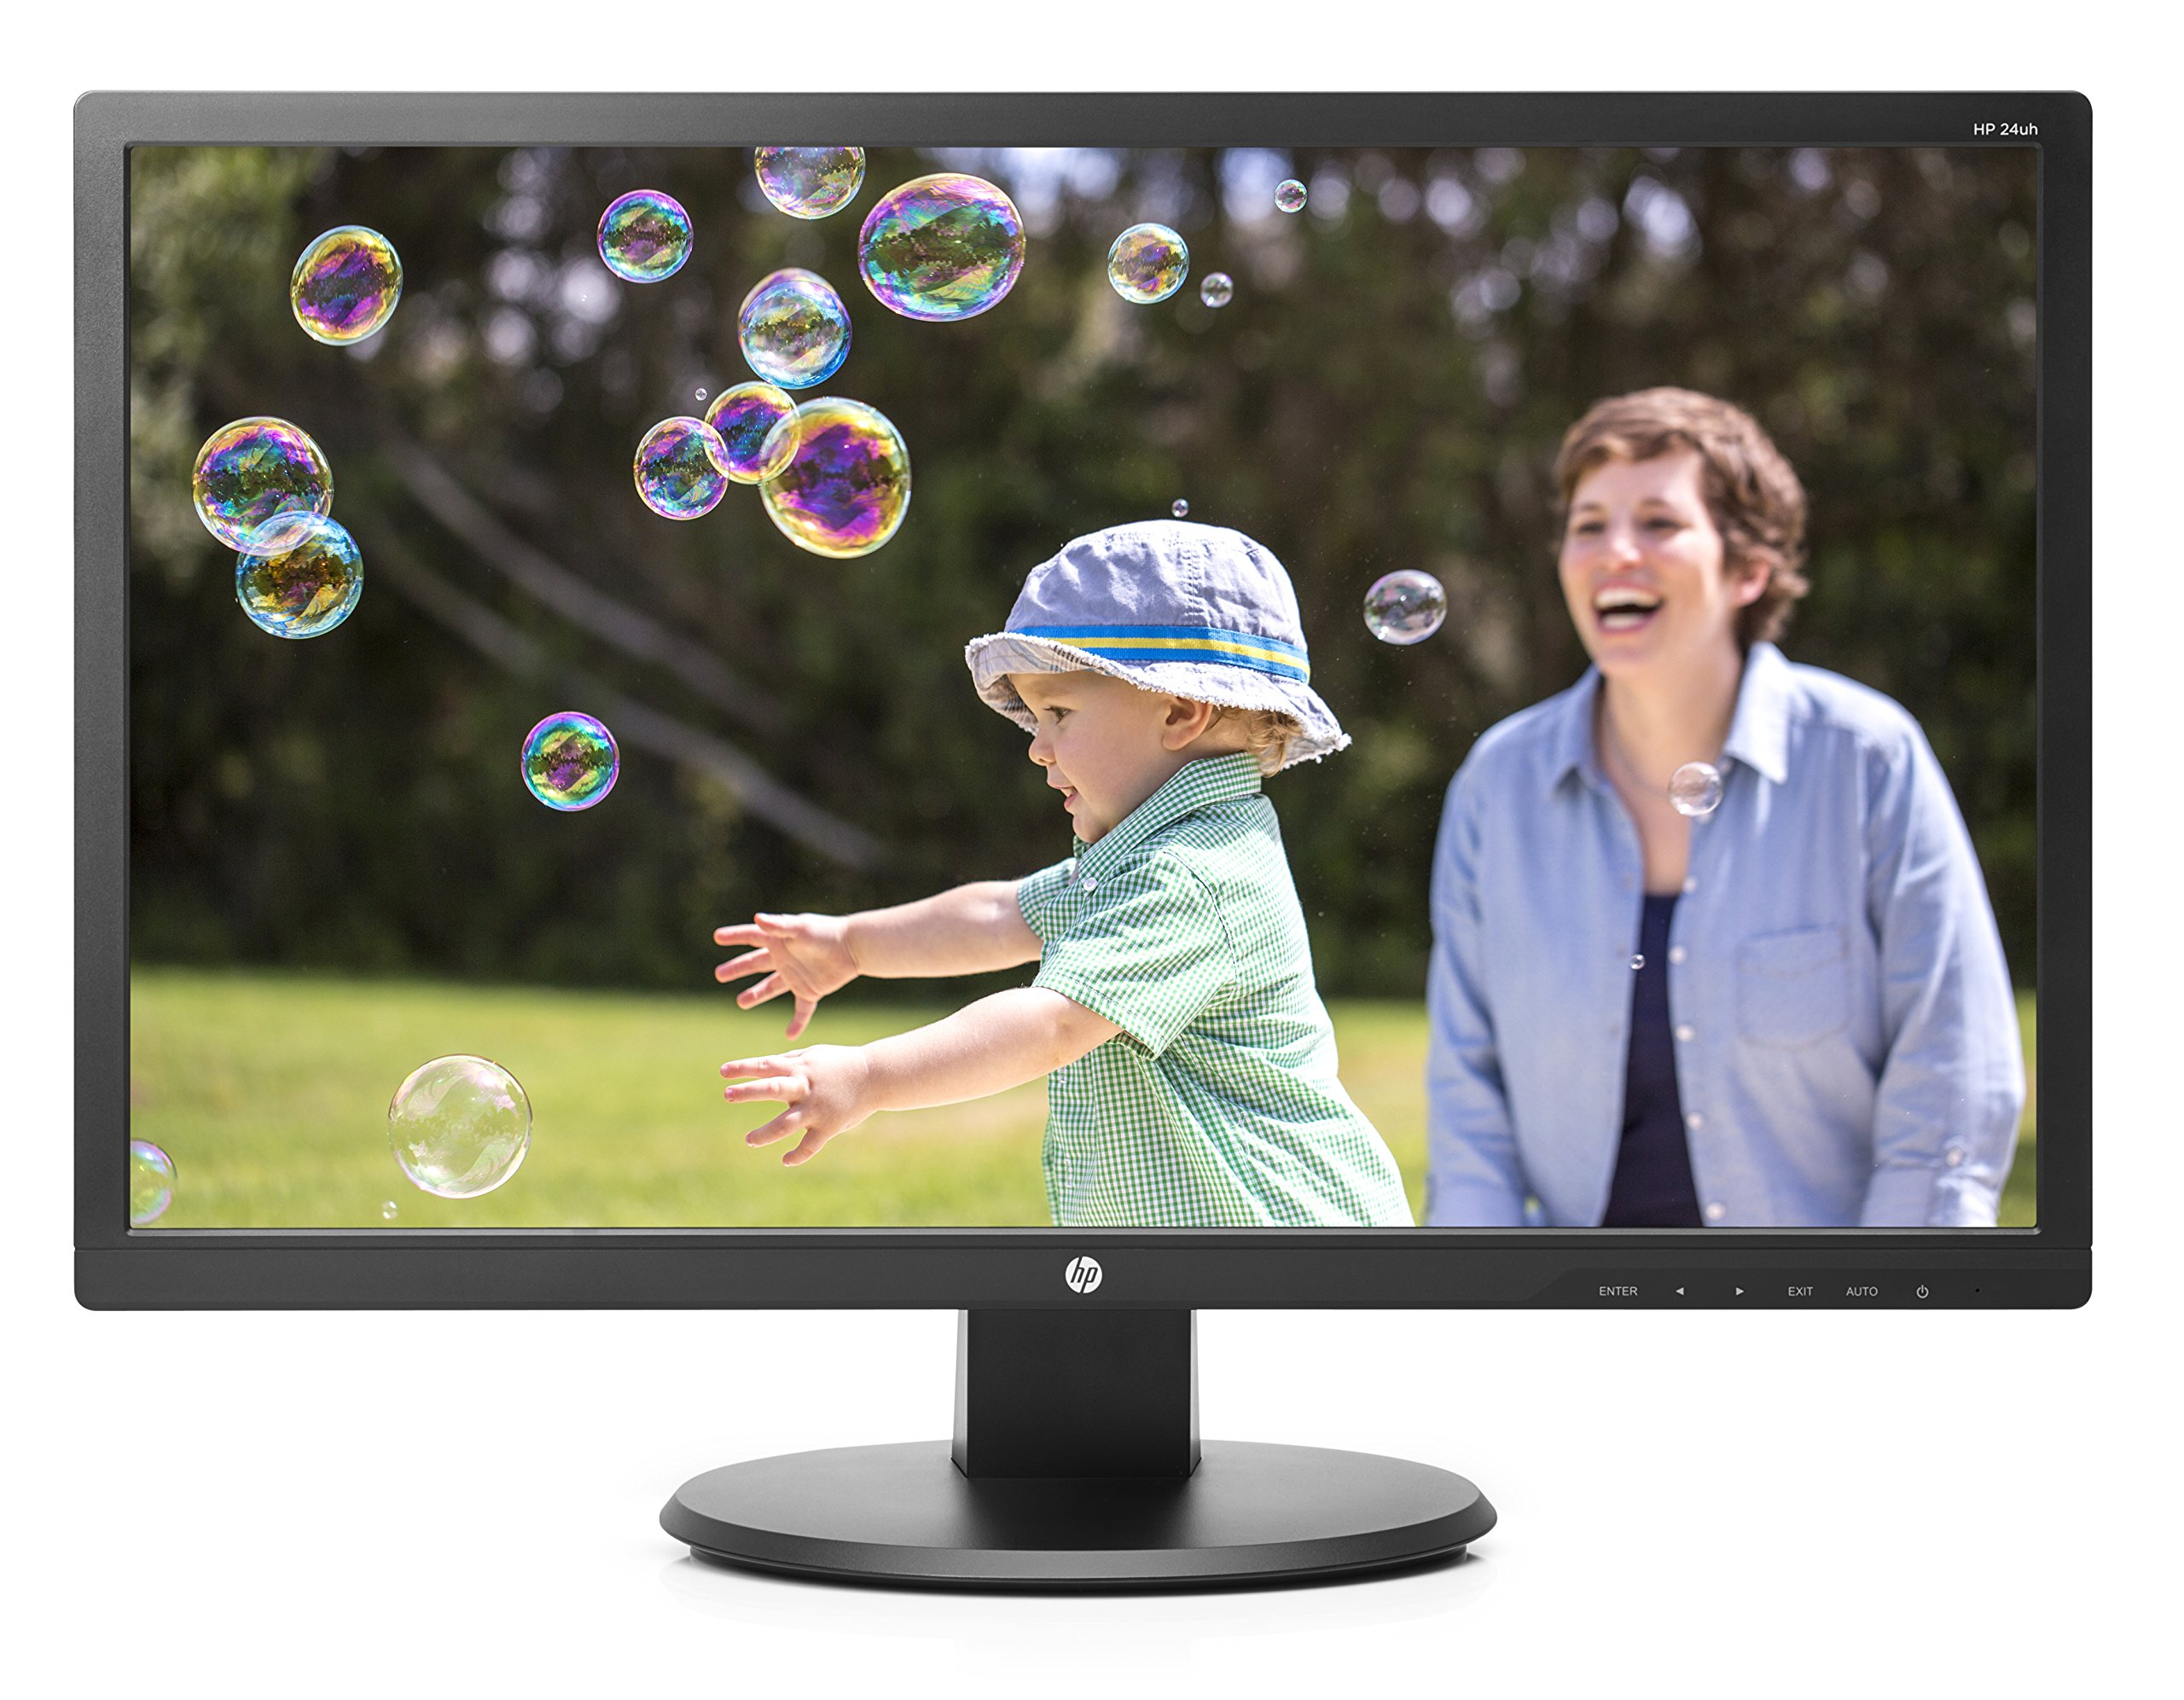 HP 24uh 24-inch LED Backlit Monitor by HP (Image #1)